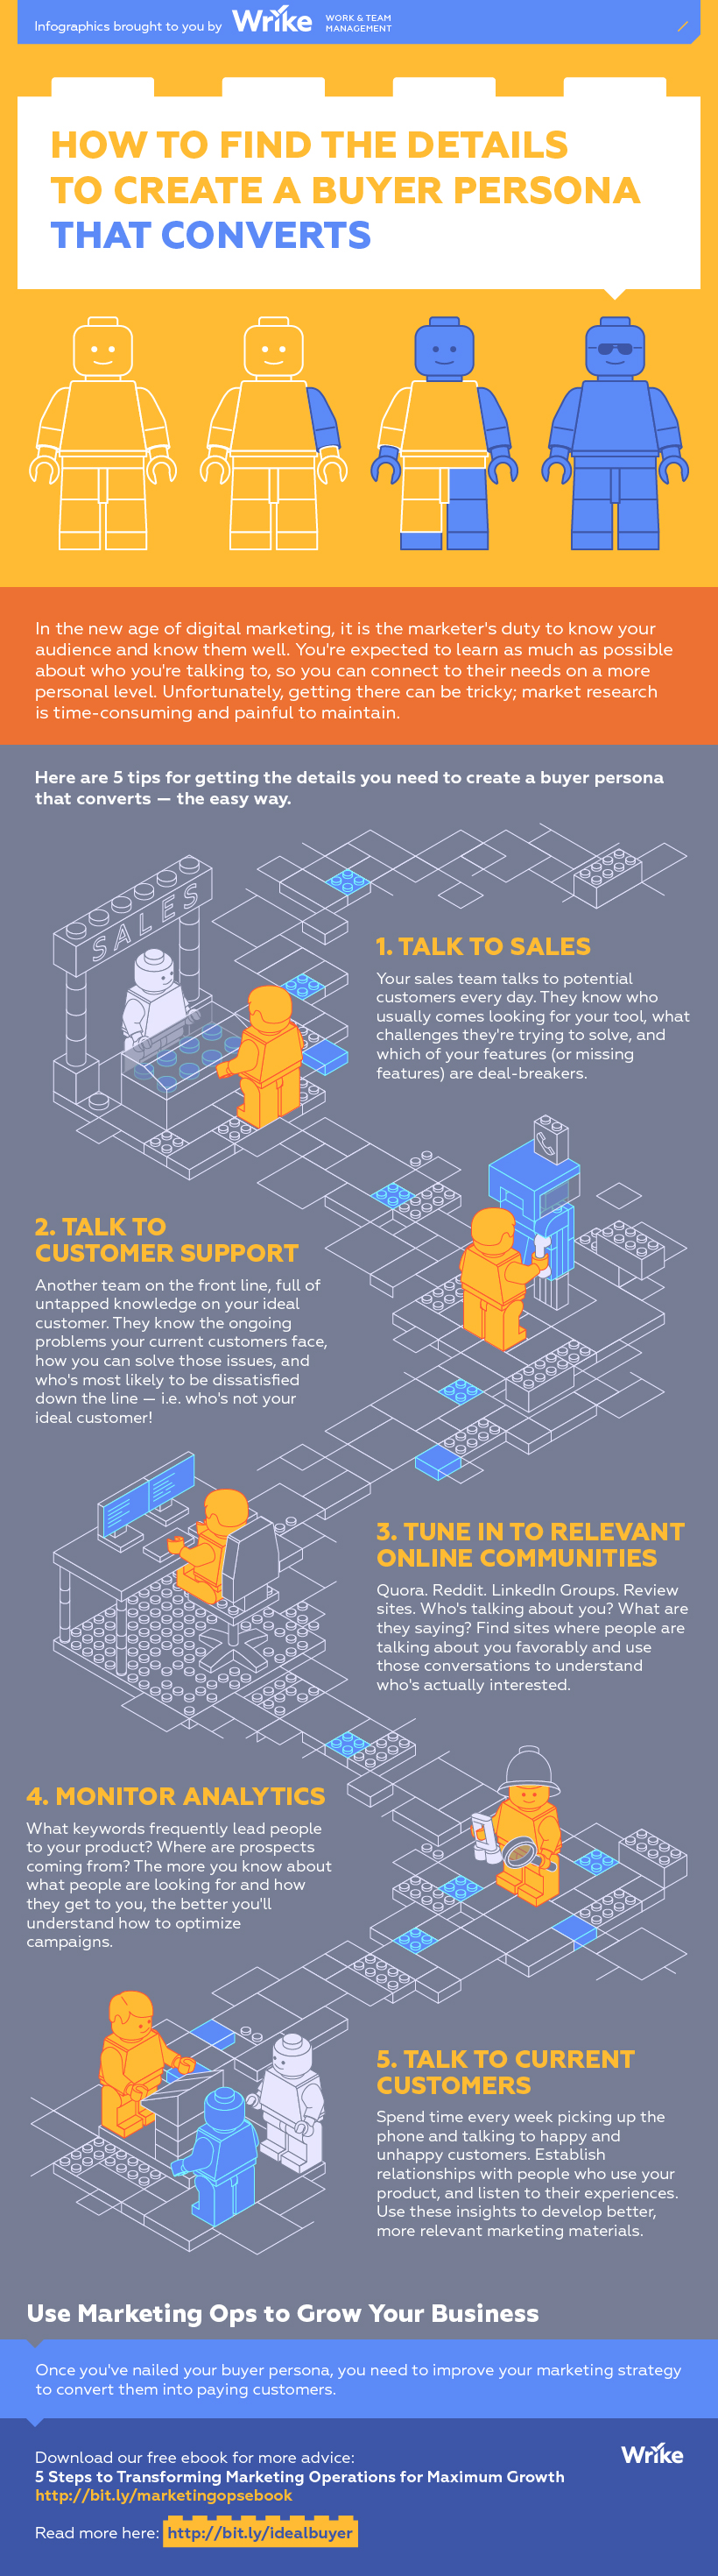 How to Build a Buyer Persona That Converts (Infographic)